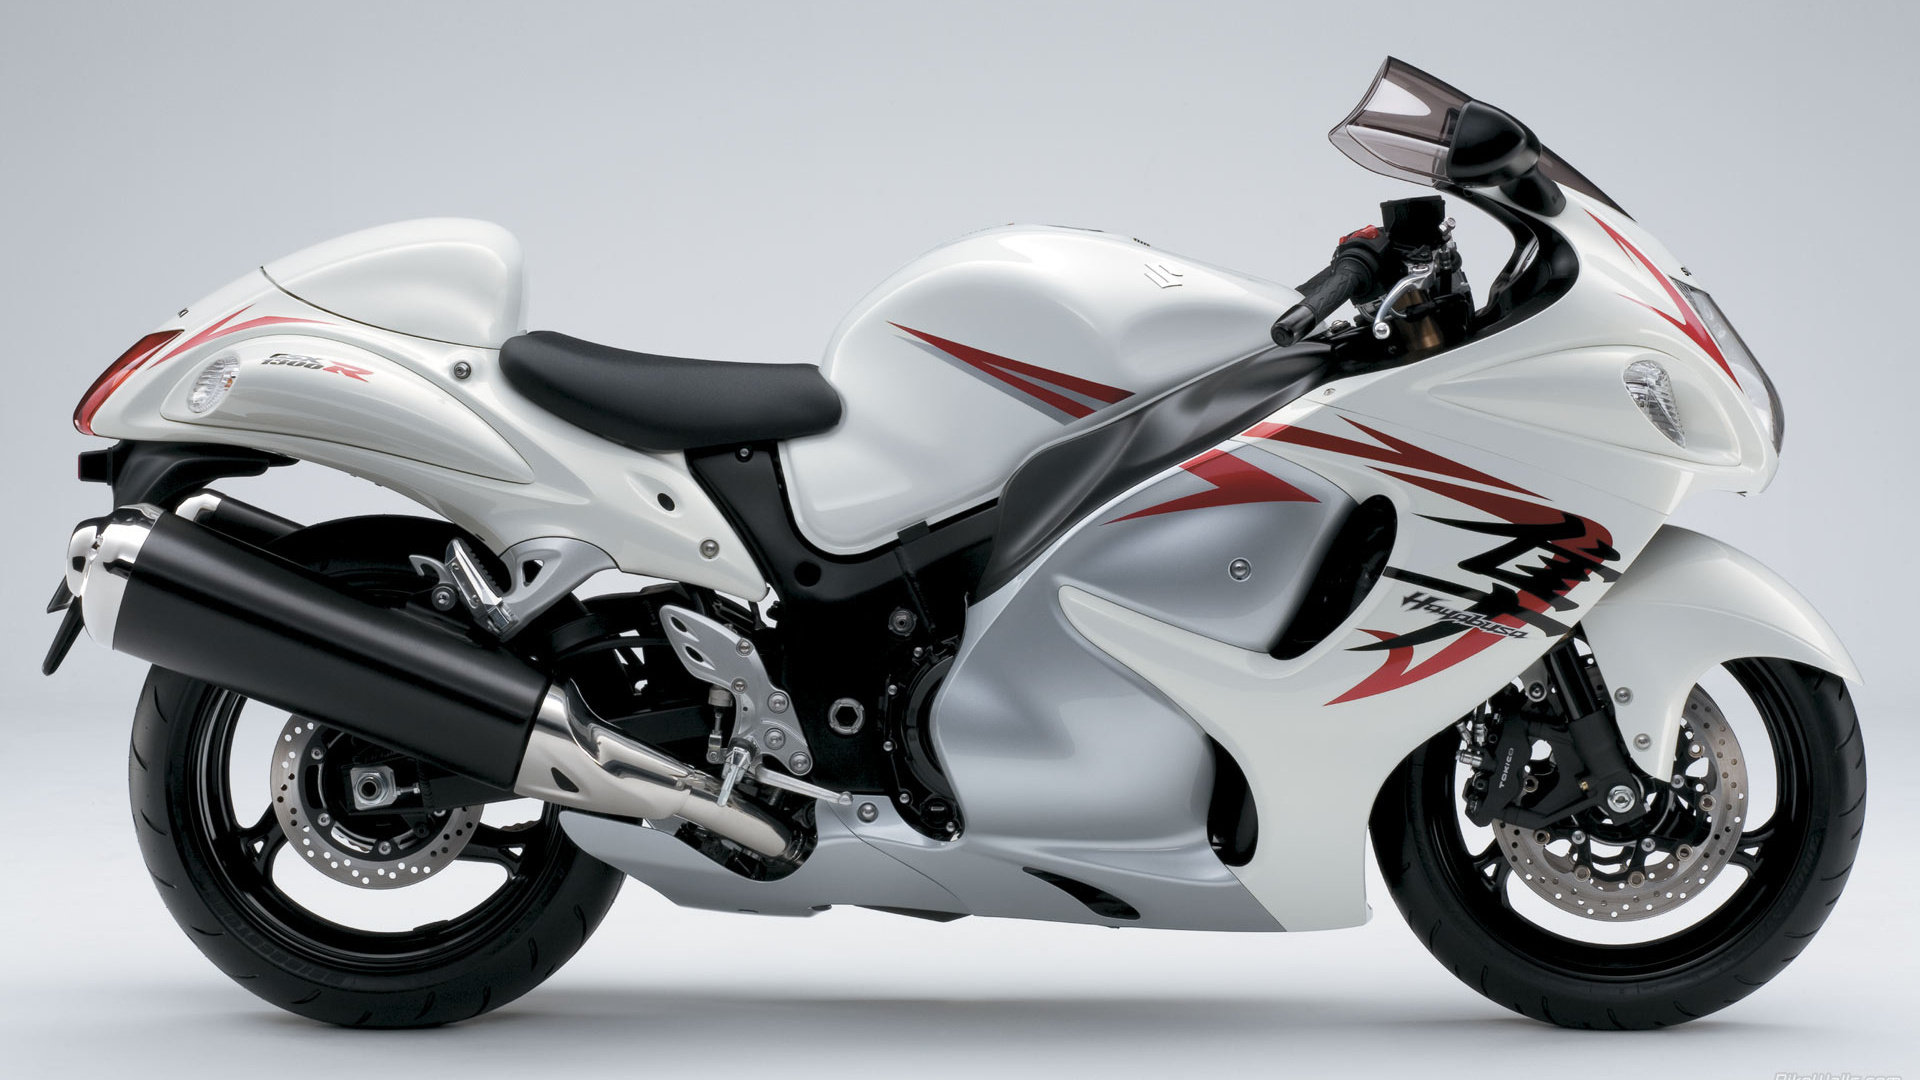 Bike Wallpaper Collection In White Color